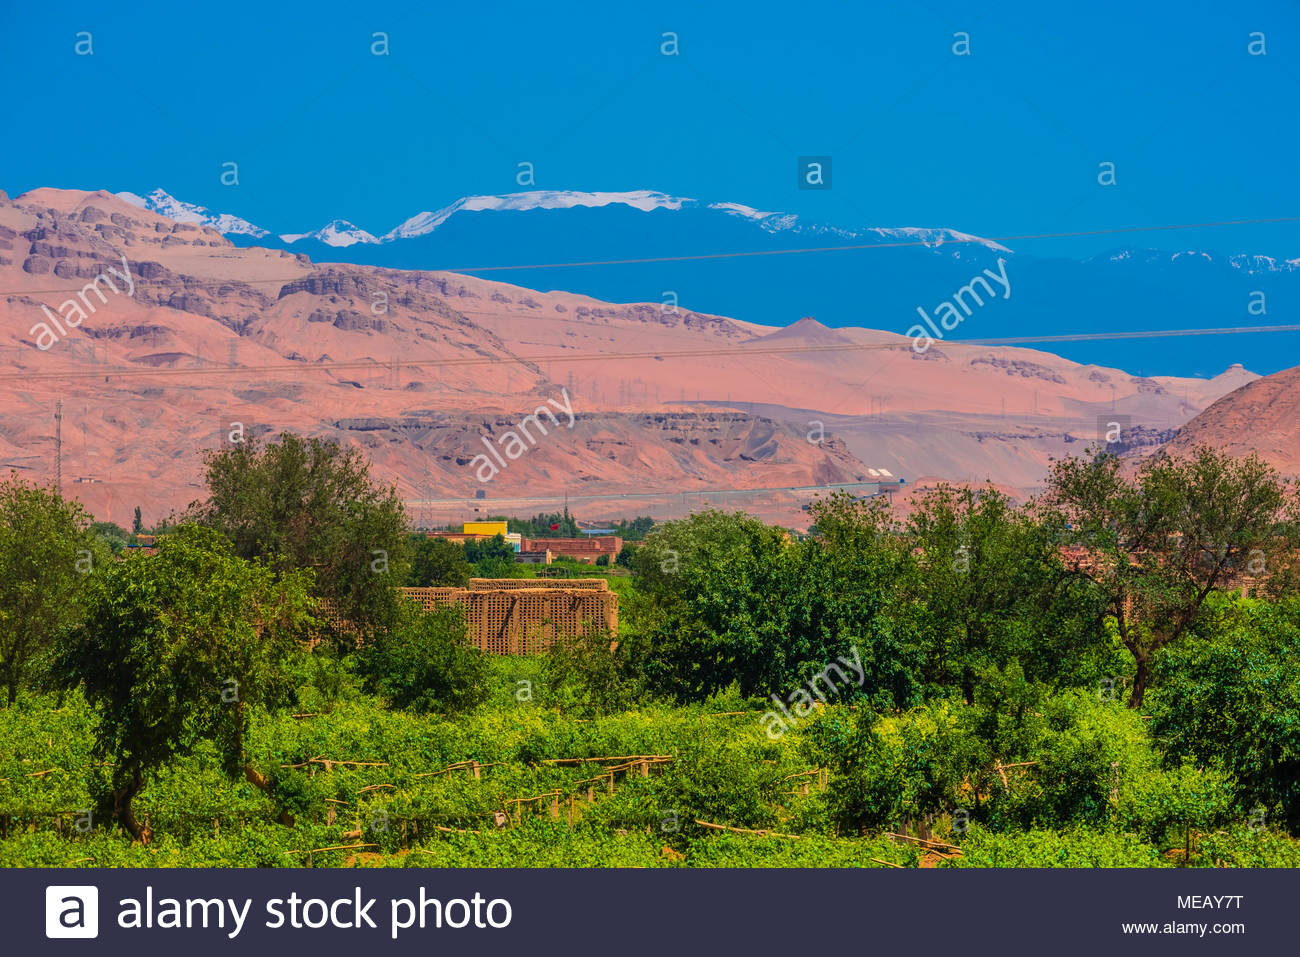 Grape drying houses and vineyards for grapes (to make raisins) near the Astana Cemetery is an ancient cemetery 37 kilometres (23 mi) southeast of Turp - Stock Image